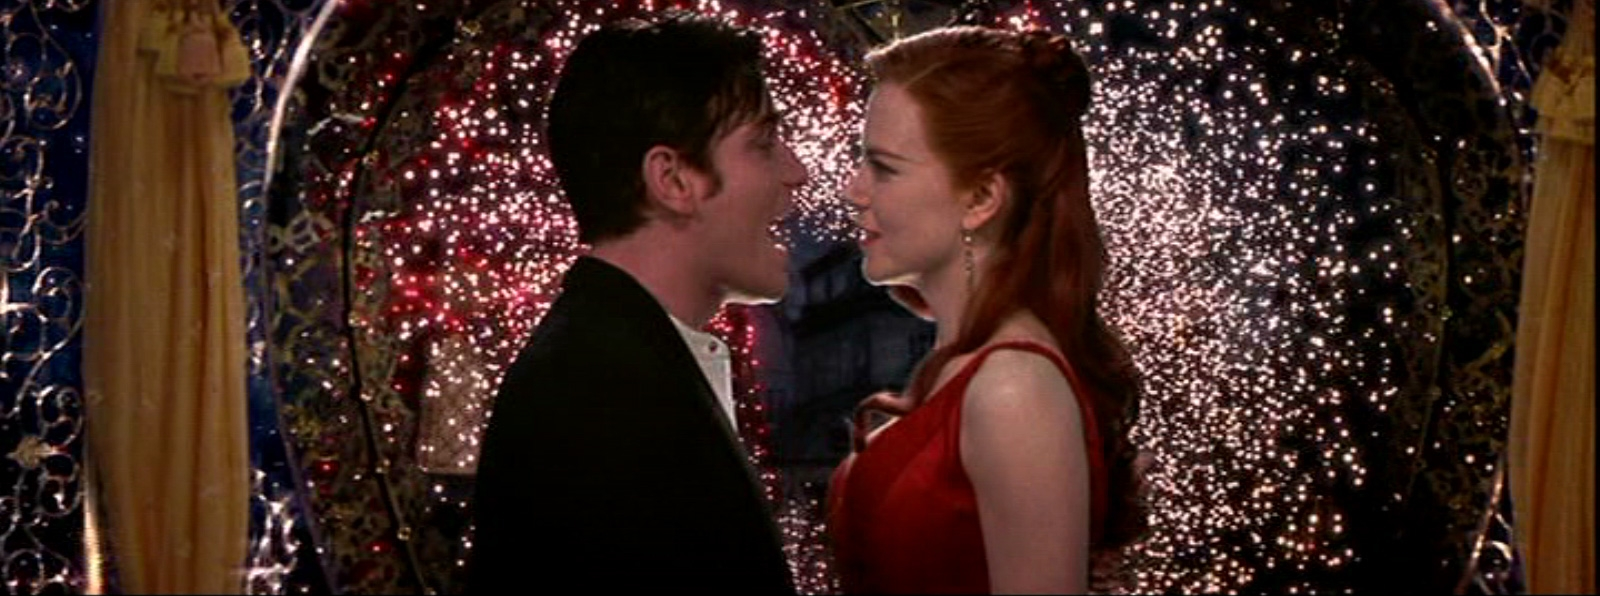 Favourite song from the movie? Poll Results - Moulin Rouge ... - photo#4